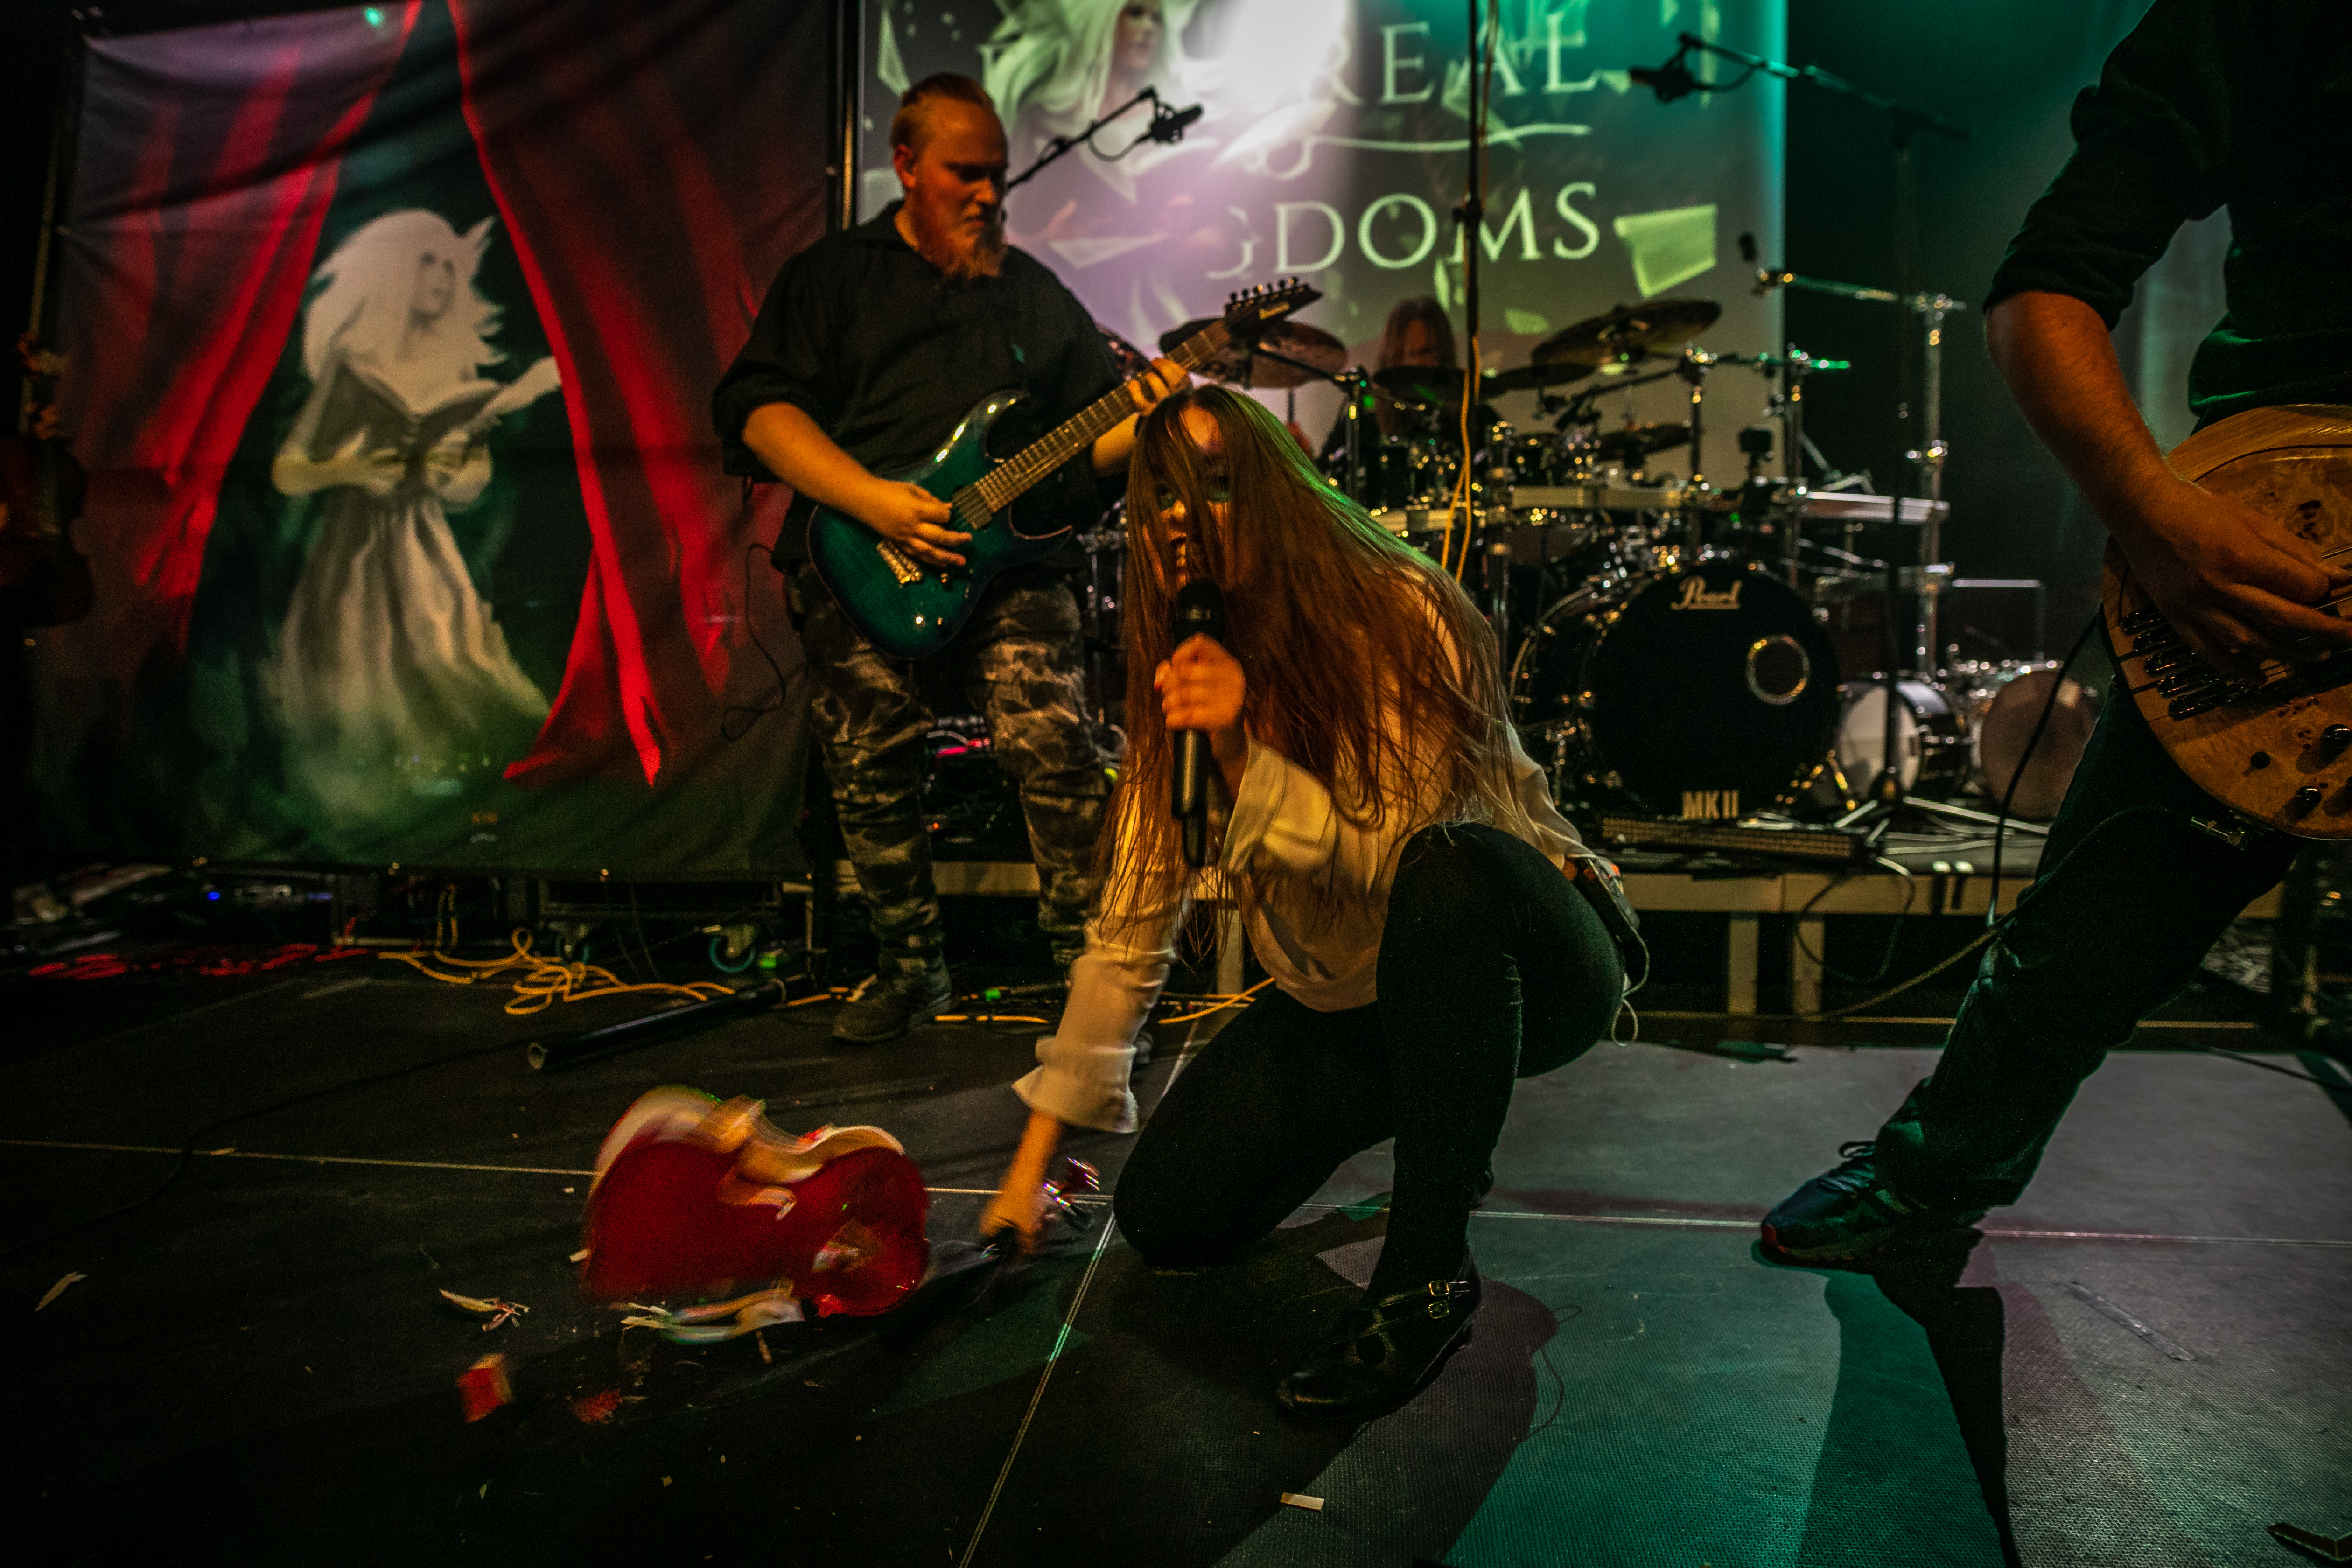 Ethereal Kingdoms live with finntroll. Sofia Schmidt destroying a violin on stage.